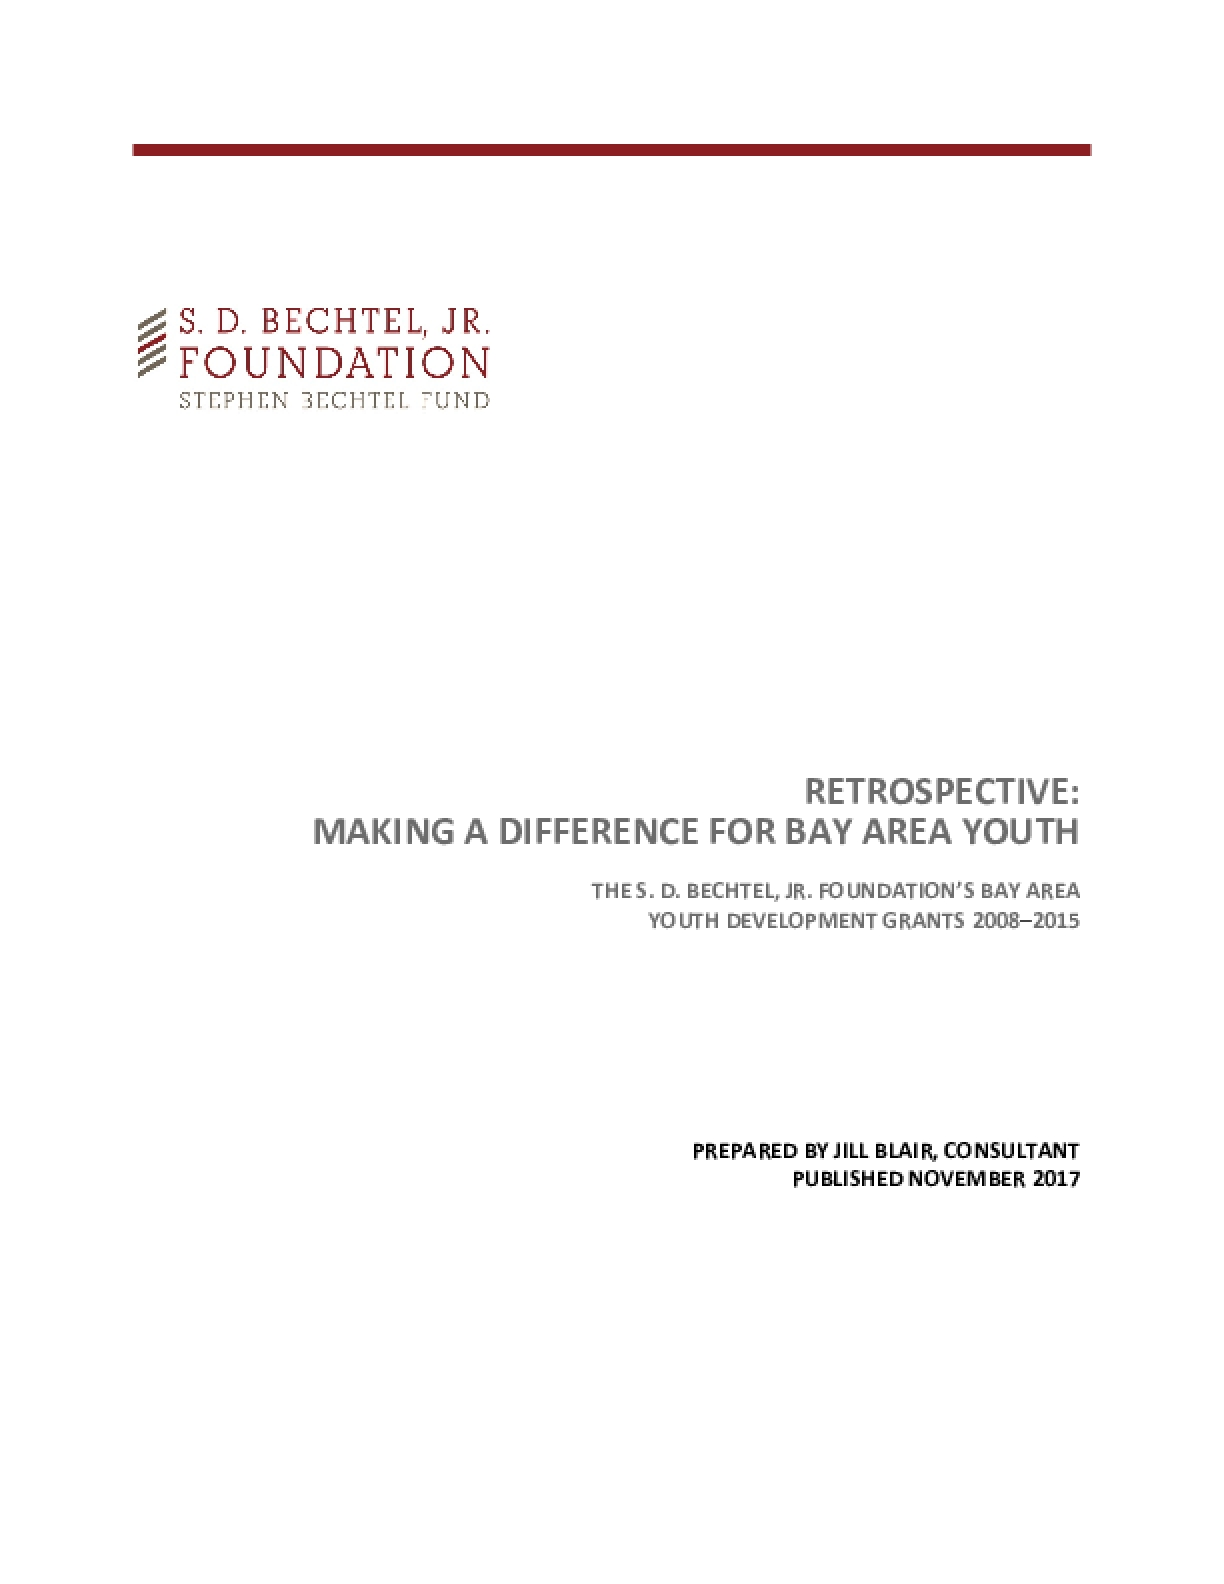 Retrospective: Making a Difference for Bay Area Youth: The S. D. Bechtel, Jr. Foundation's Bay Area Youth Development Grants 2008-2015